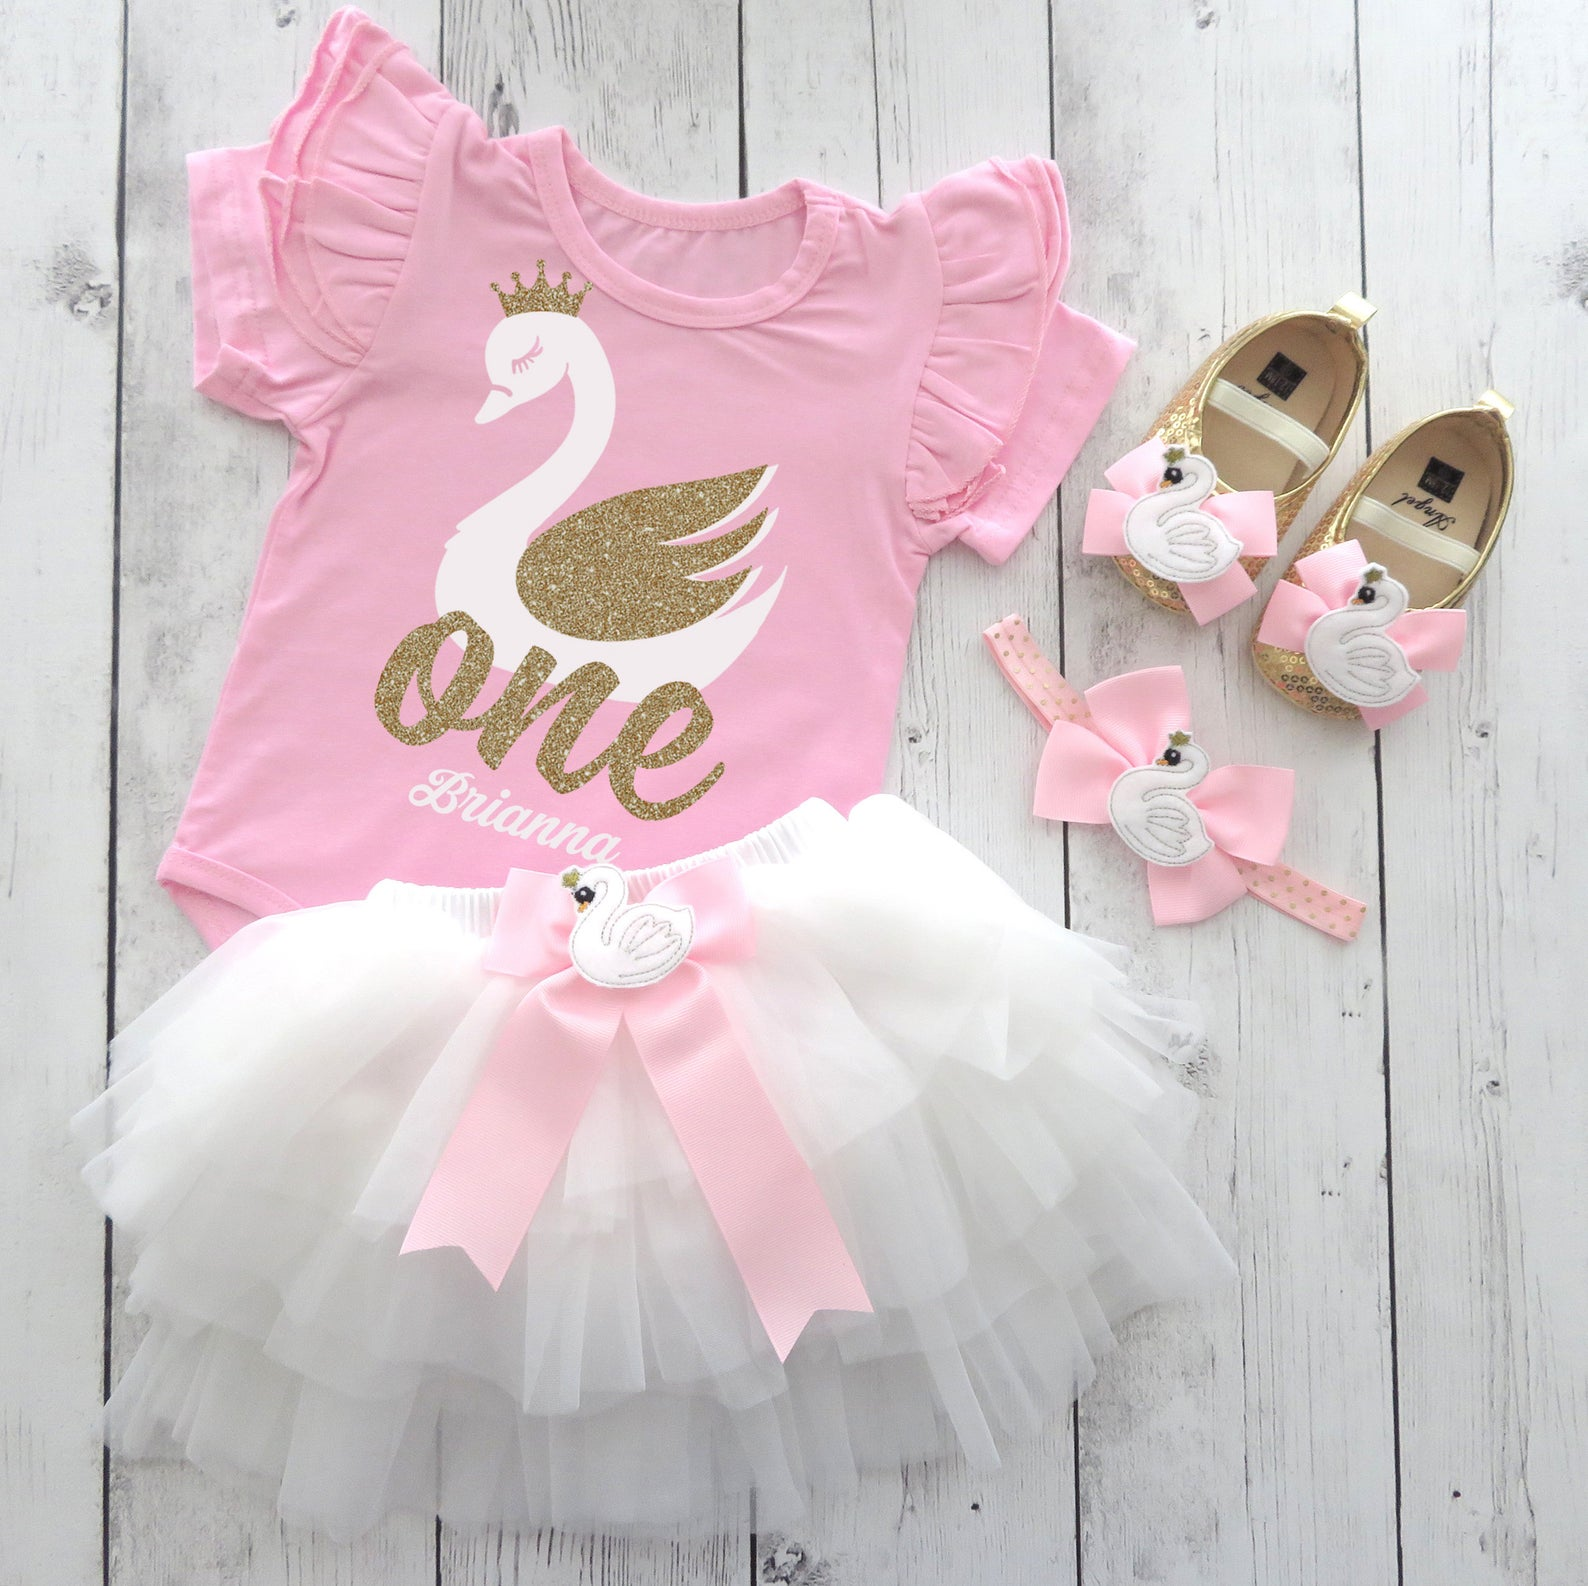 Swan First Birthday Outfit for girl in pink, mint and gold - swan soiree, personalized, ruffle sleeves, swan princess bday, swan lake bday